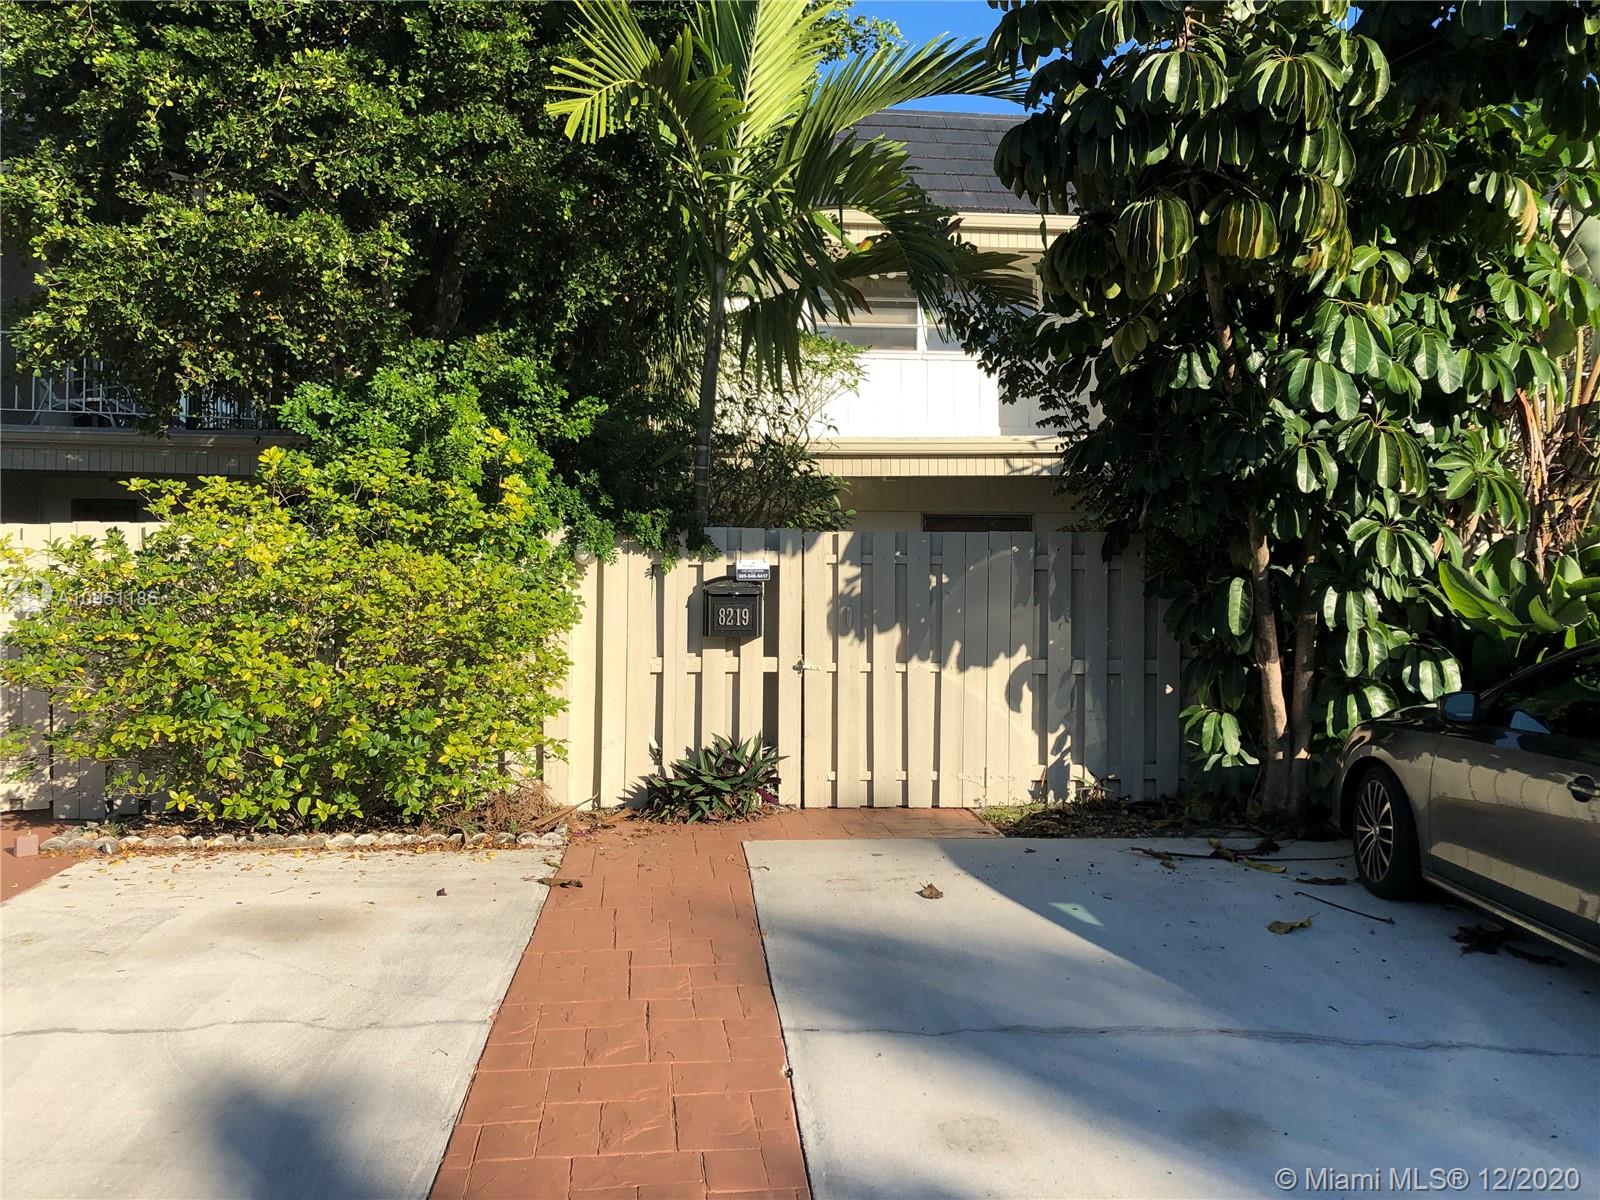 KINGS CREEK TOWNHOUSE:  2 BEDROOM, 2 1/2 BATHROOM, 2-STORY WITH LARGE SCREENED PATIO IN QUIET INTERIOR LOCATION.  ENJOY FULL AMENITIES:  POOL, TENNIS, PLAY AREA, ON SITE MANAGER, ROAMING SECURITY!  ENTIRE COMPLEX BEING PAINTED NOW!  GREAT LOCATION CLOSE TO DADELAND MALL, BAPTIST HOSPITAL AND EXPRESSWAYS!  EXCELLENT COMMUNITY WITH STRONG RESERVES!